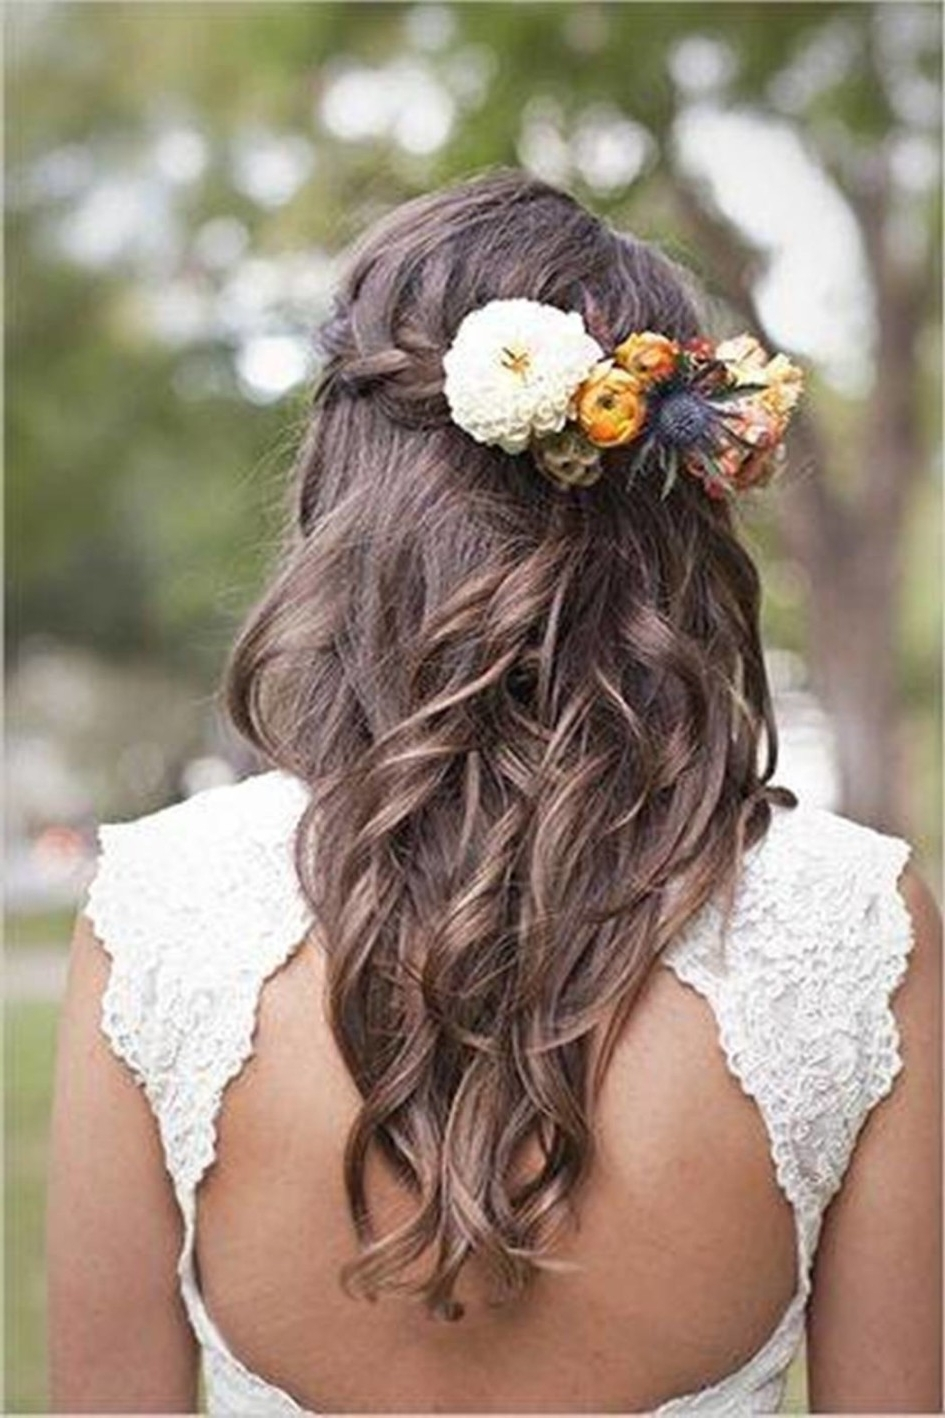 Wedding Hairstyles Ideas: Wedding Hair Flowers Braid Combined With Throughout 2017 Outdoor Wedding Hairstyles For Bridesmaids (View 2 of 15)